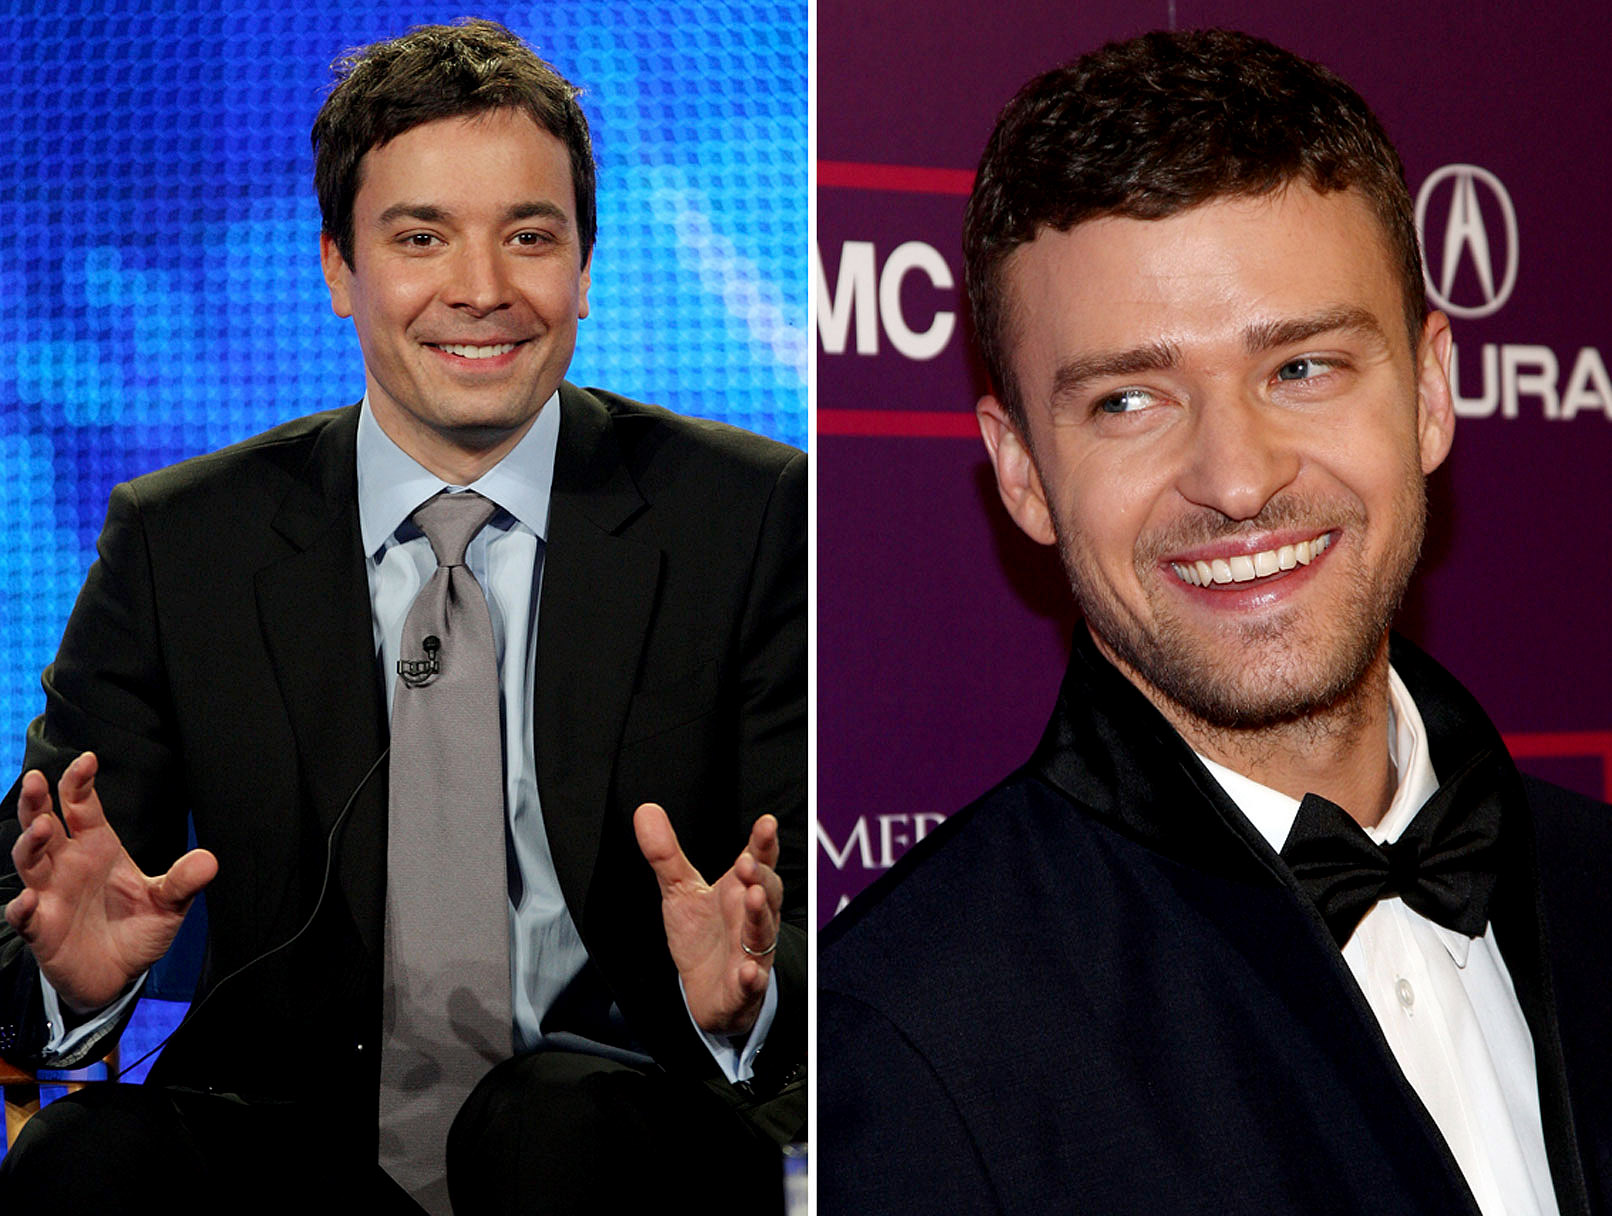 Justin Timberlake to Guest on Jimmy Fallon's Show